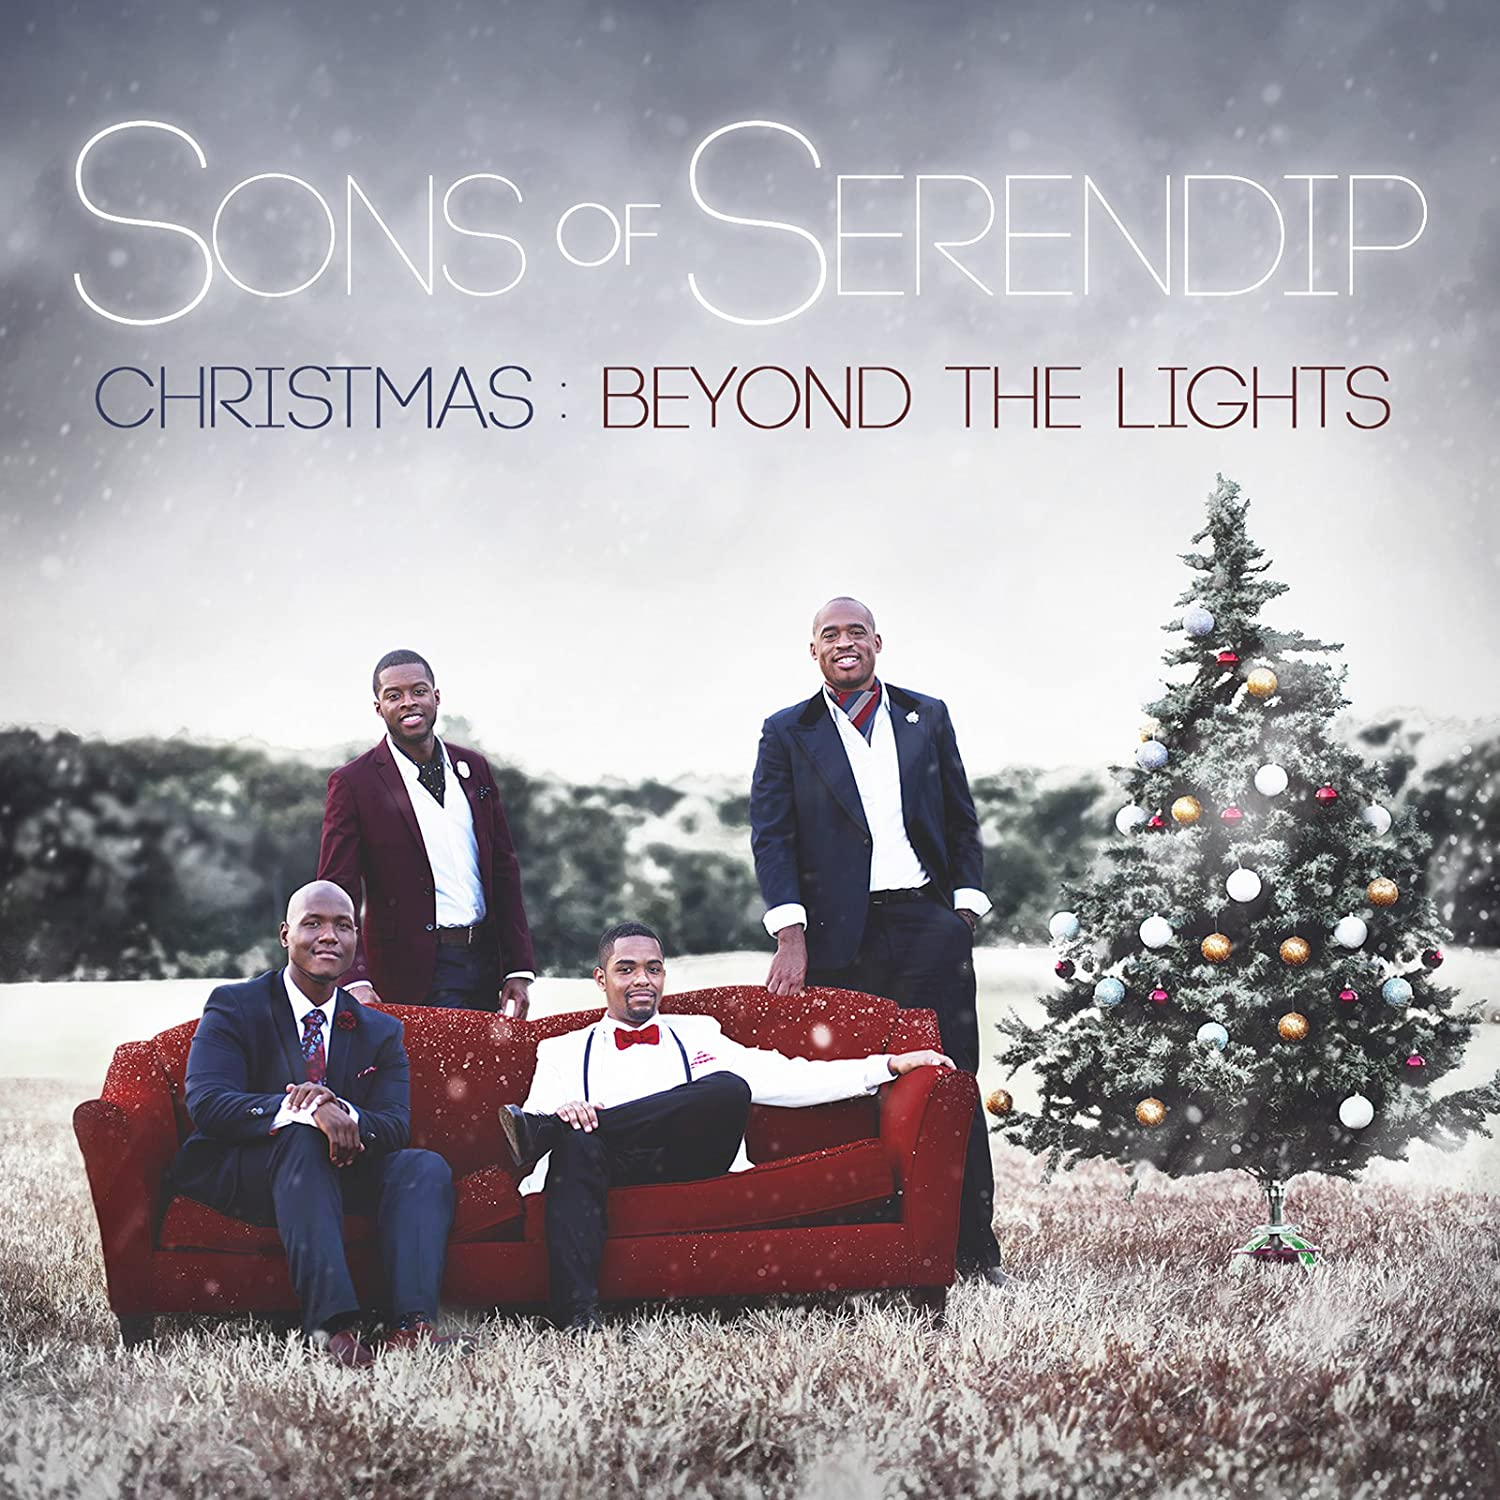 Sons Of Serendip - Christmas: Beyond The Lights - Amazon.com Music